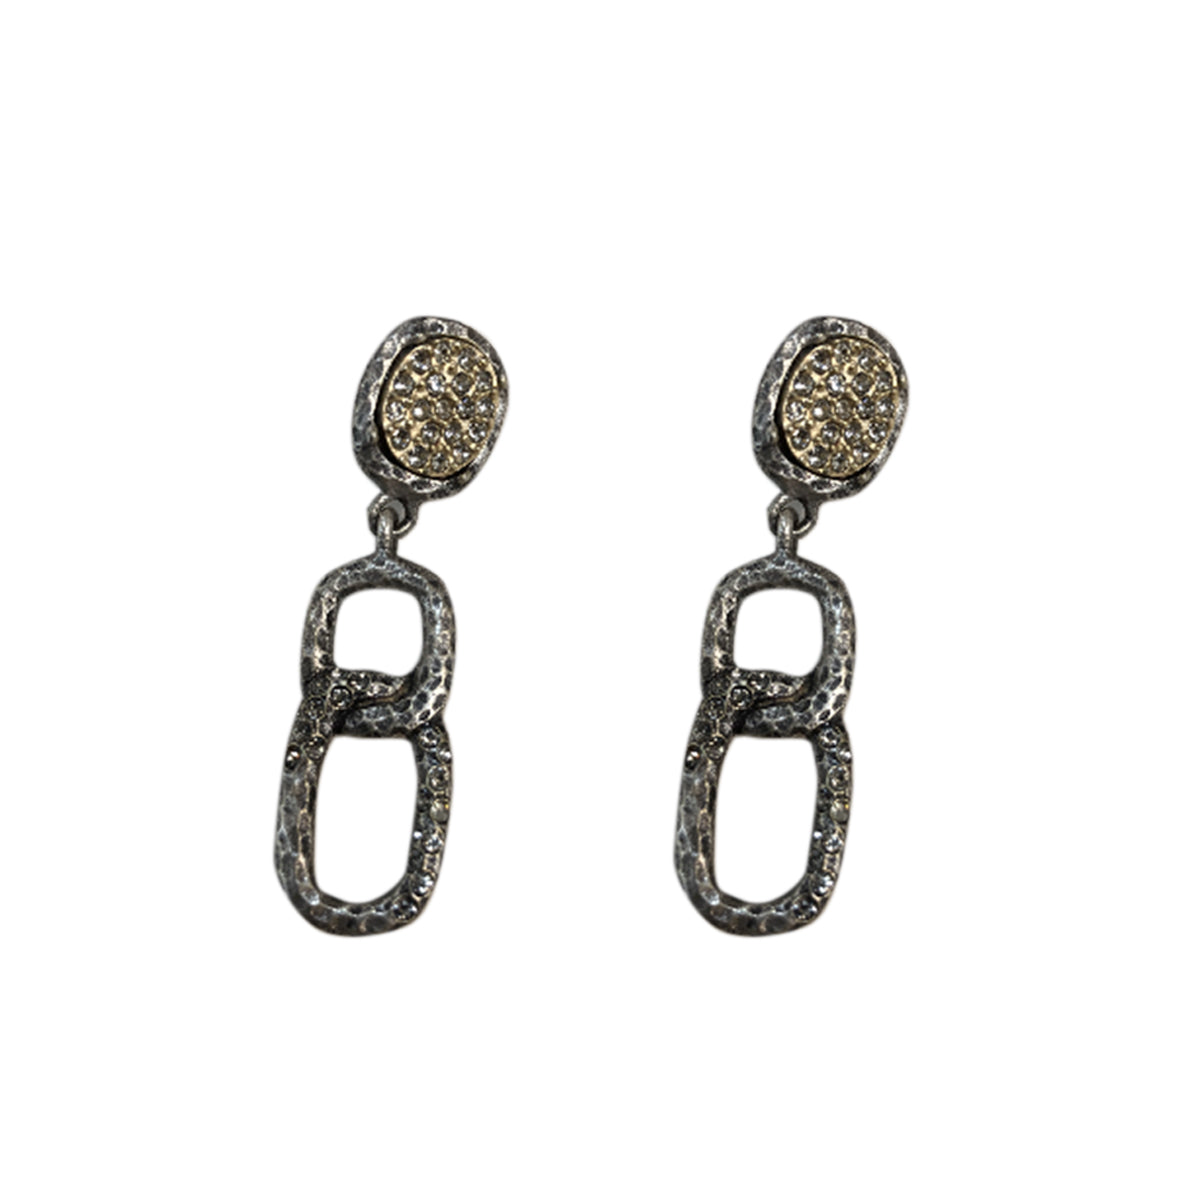 VINTAGE SILVER PAVIA PAVE & LINK EARRINGS